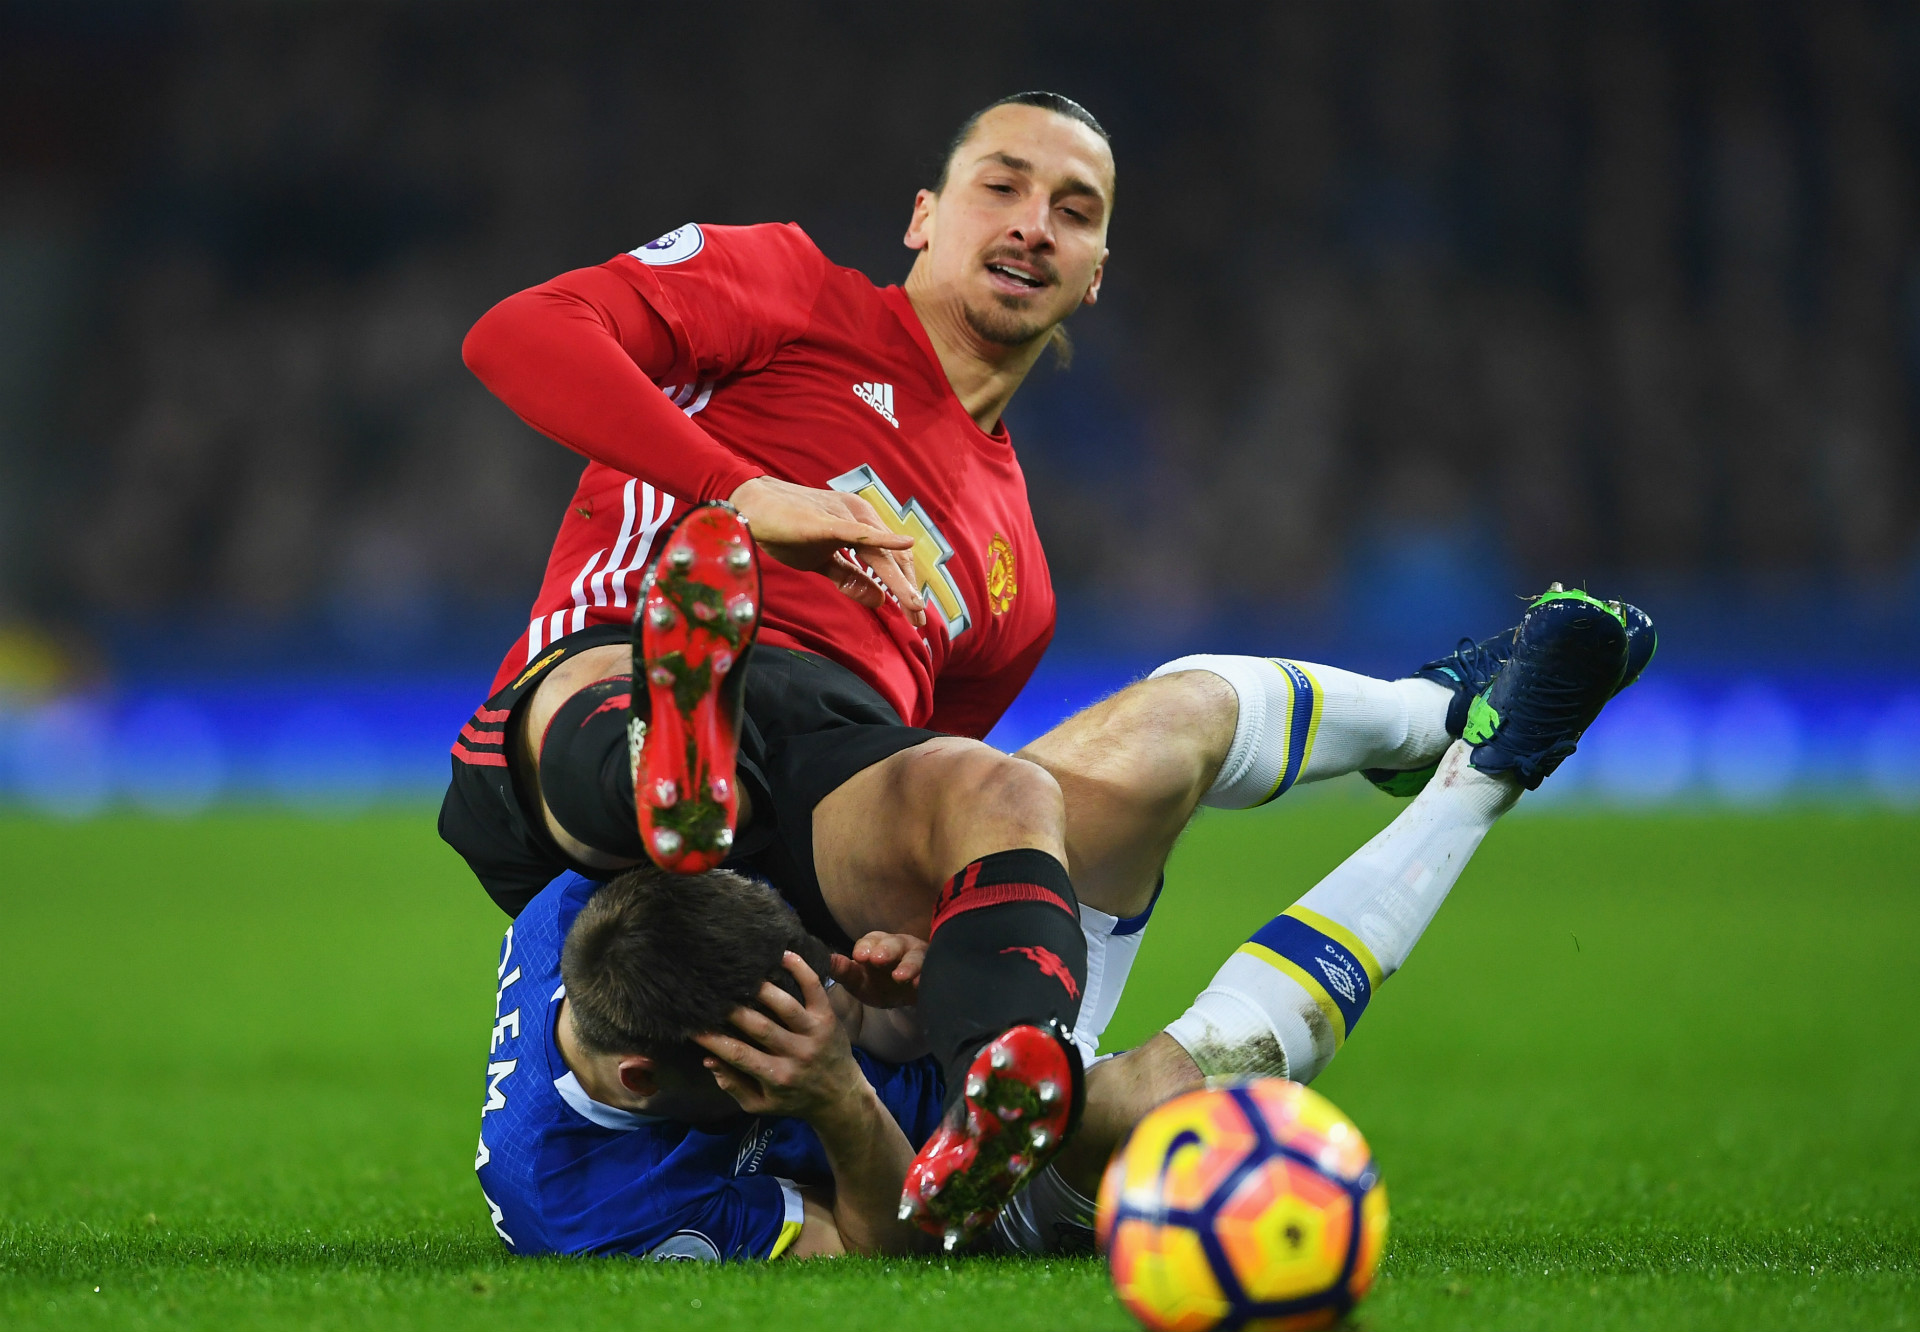 Manchester United boss Jose Mourinho clarifies Marouane Fellaini substitution, reacts to penalty